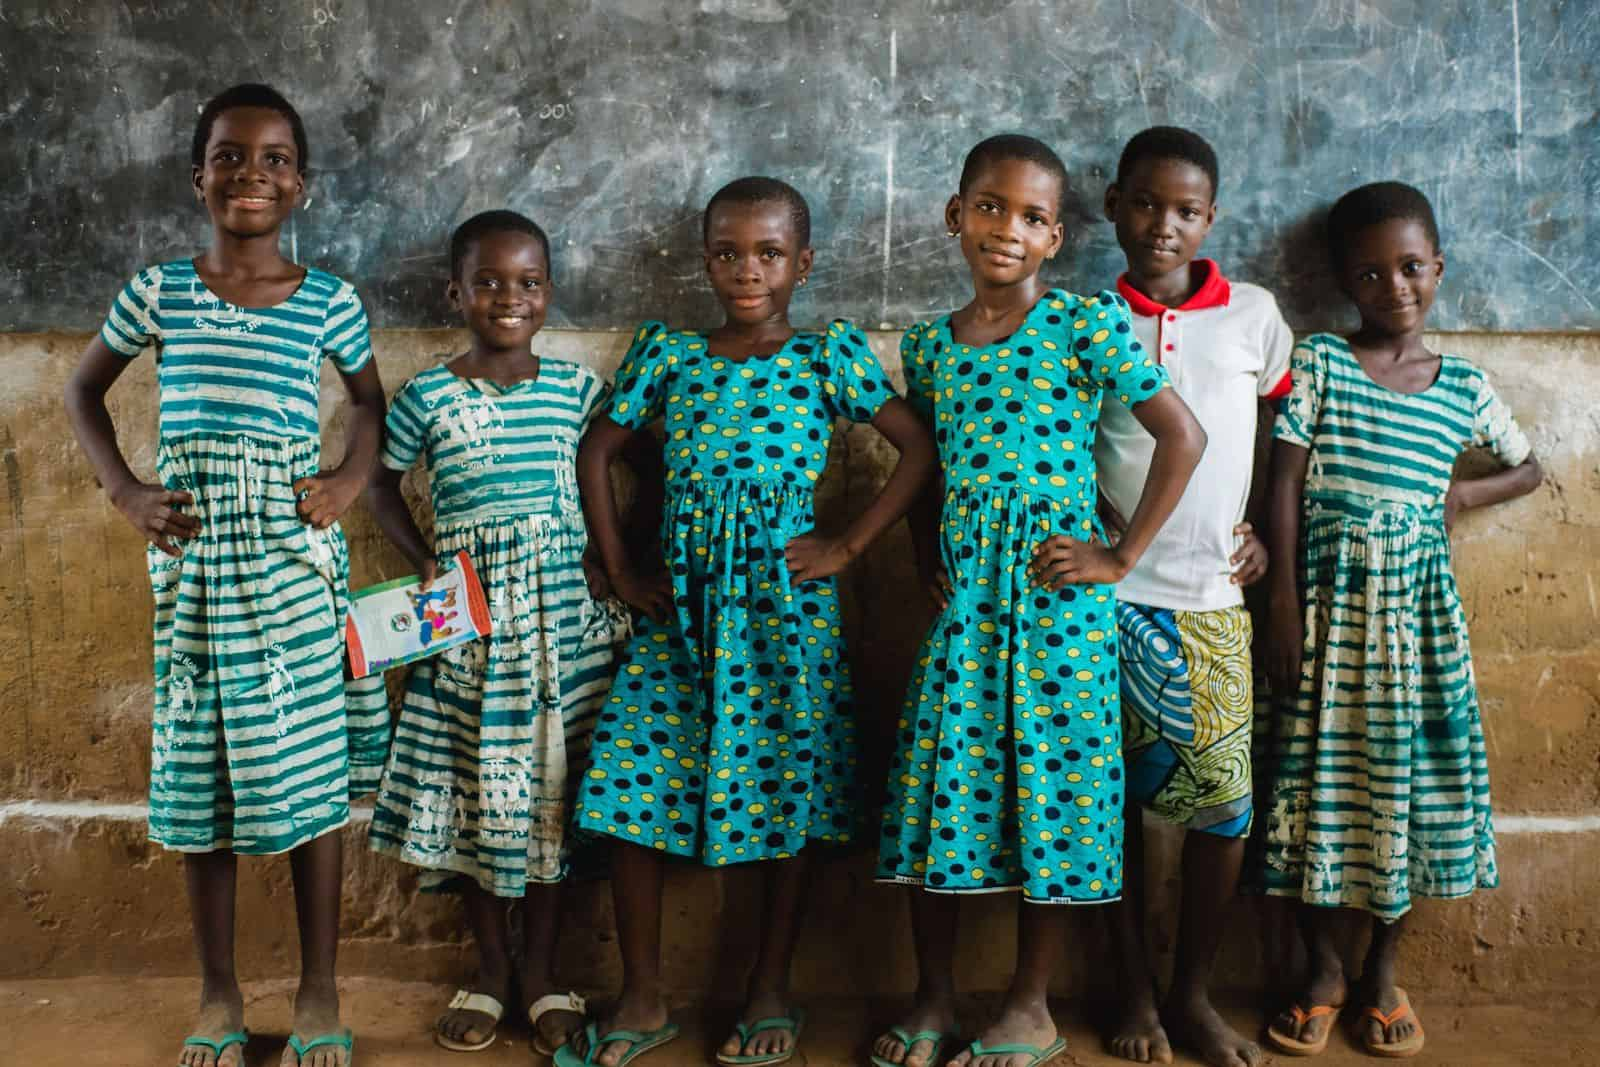 A group of girls in green patterned dresses stands in front of a chalkboard in a classroom, with hands on hips.